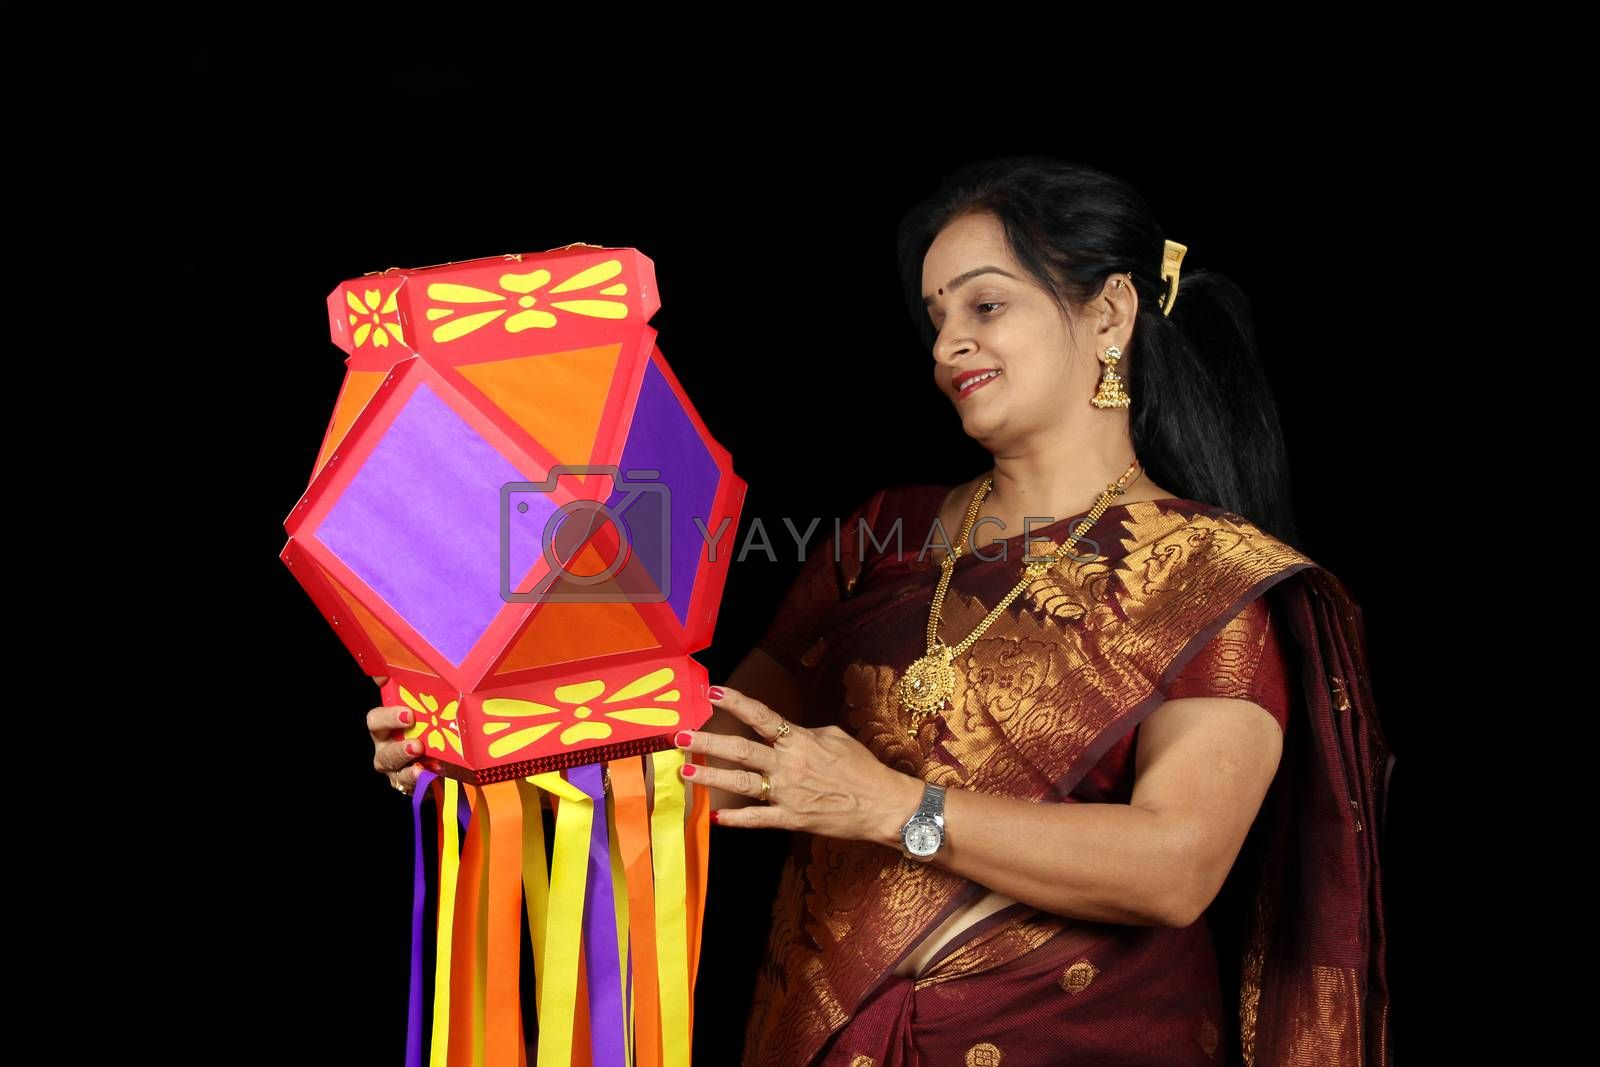 An Indian woman happy with her colorful traditional lantern during Diwali festival in India.